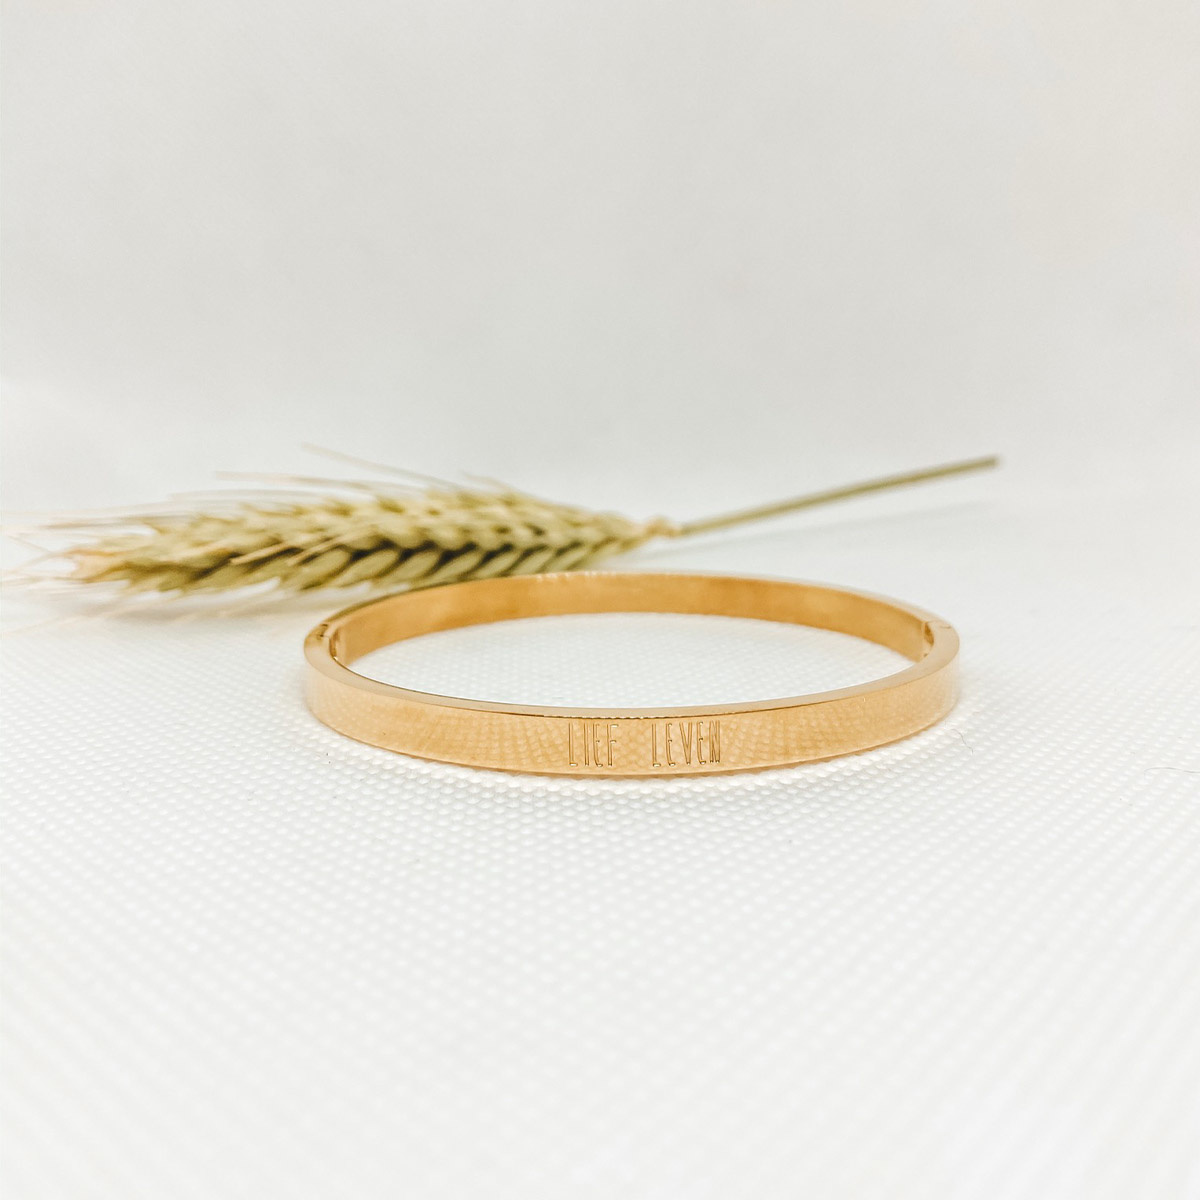 Armband • Lief Leven